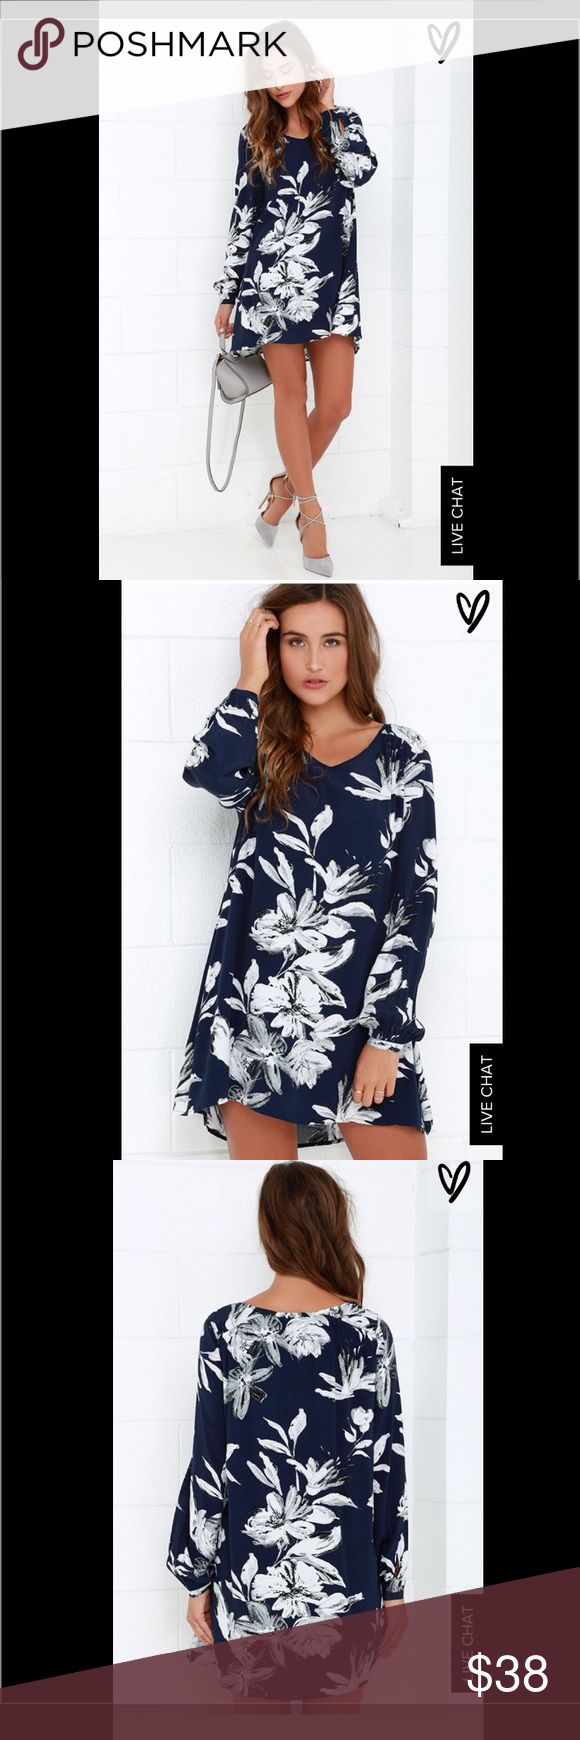 Lulus Sunday mood floral dress navy/white Beautiful lulus floral Sunday mood floral print shift dress. Excellent condition only worn once and dry cleaned after. Size large and runs big. Sold out online!!! Not back in stock yet on lulus website. Originally $62 Lulu's Dresses Long Sleeve